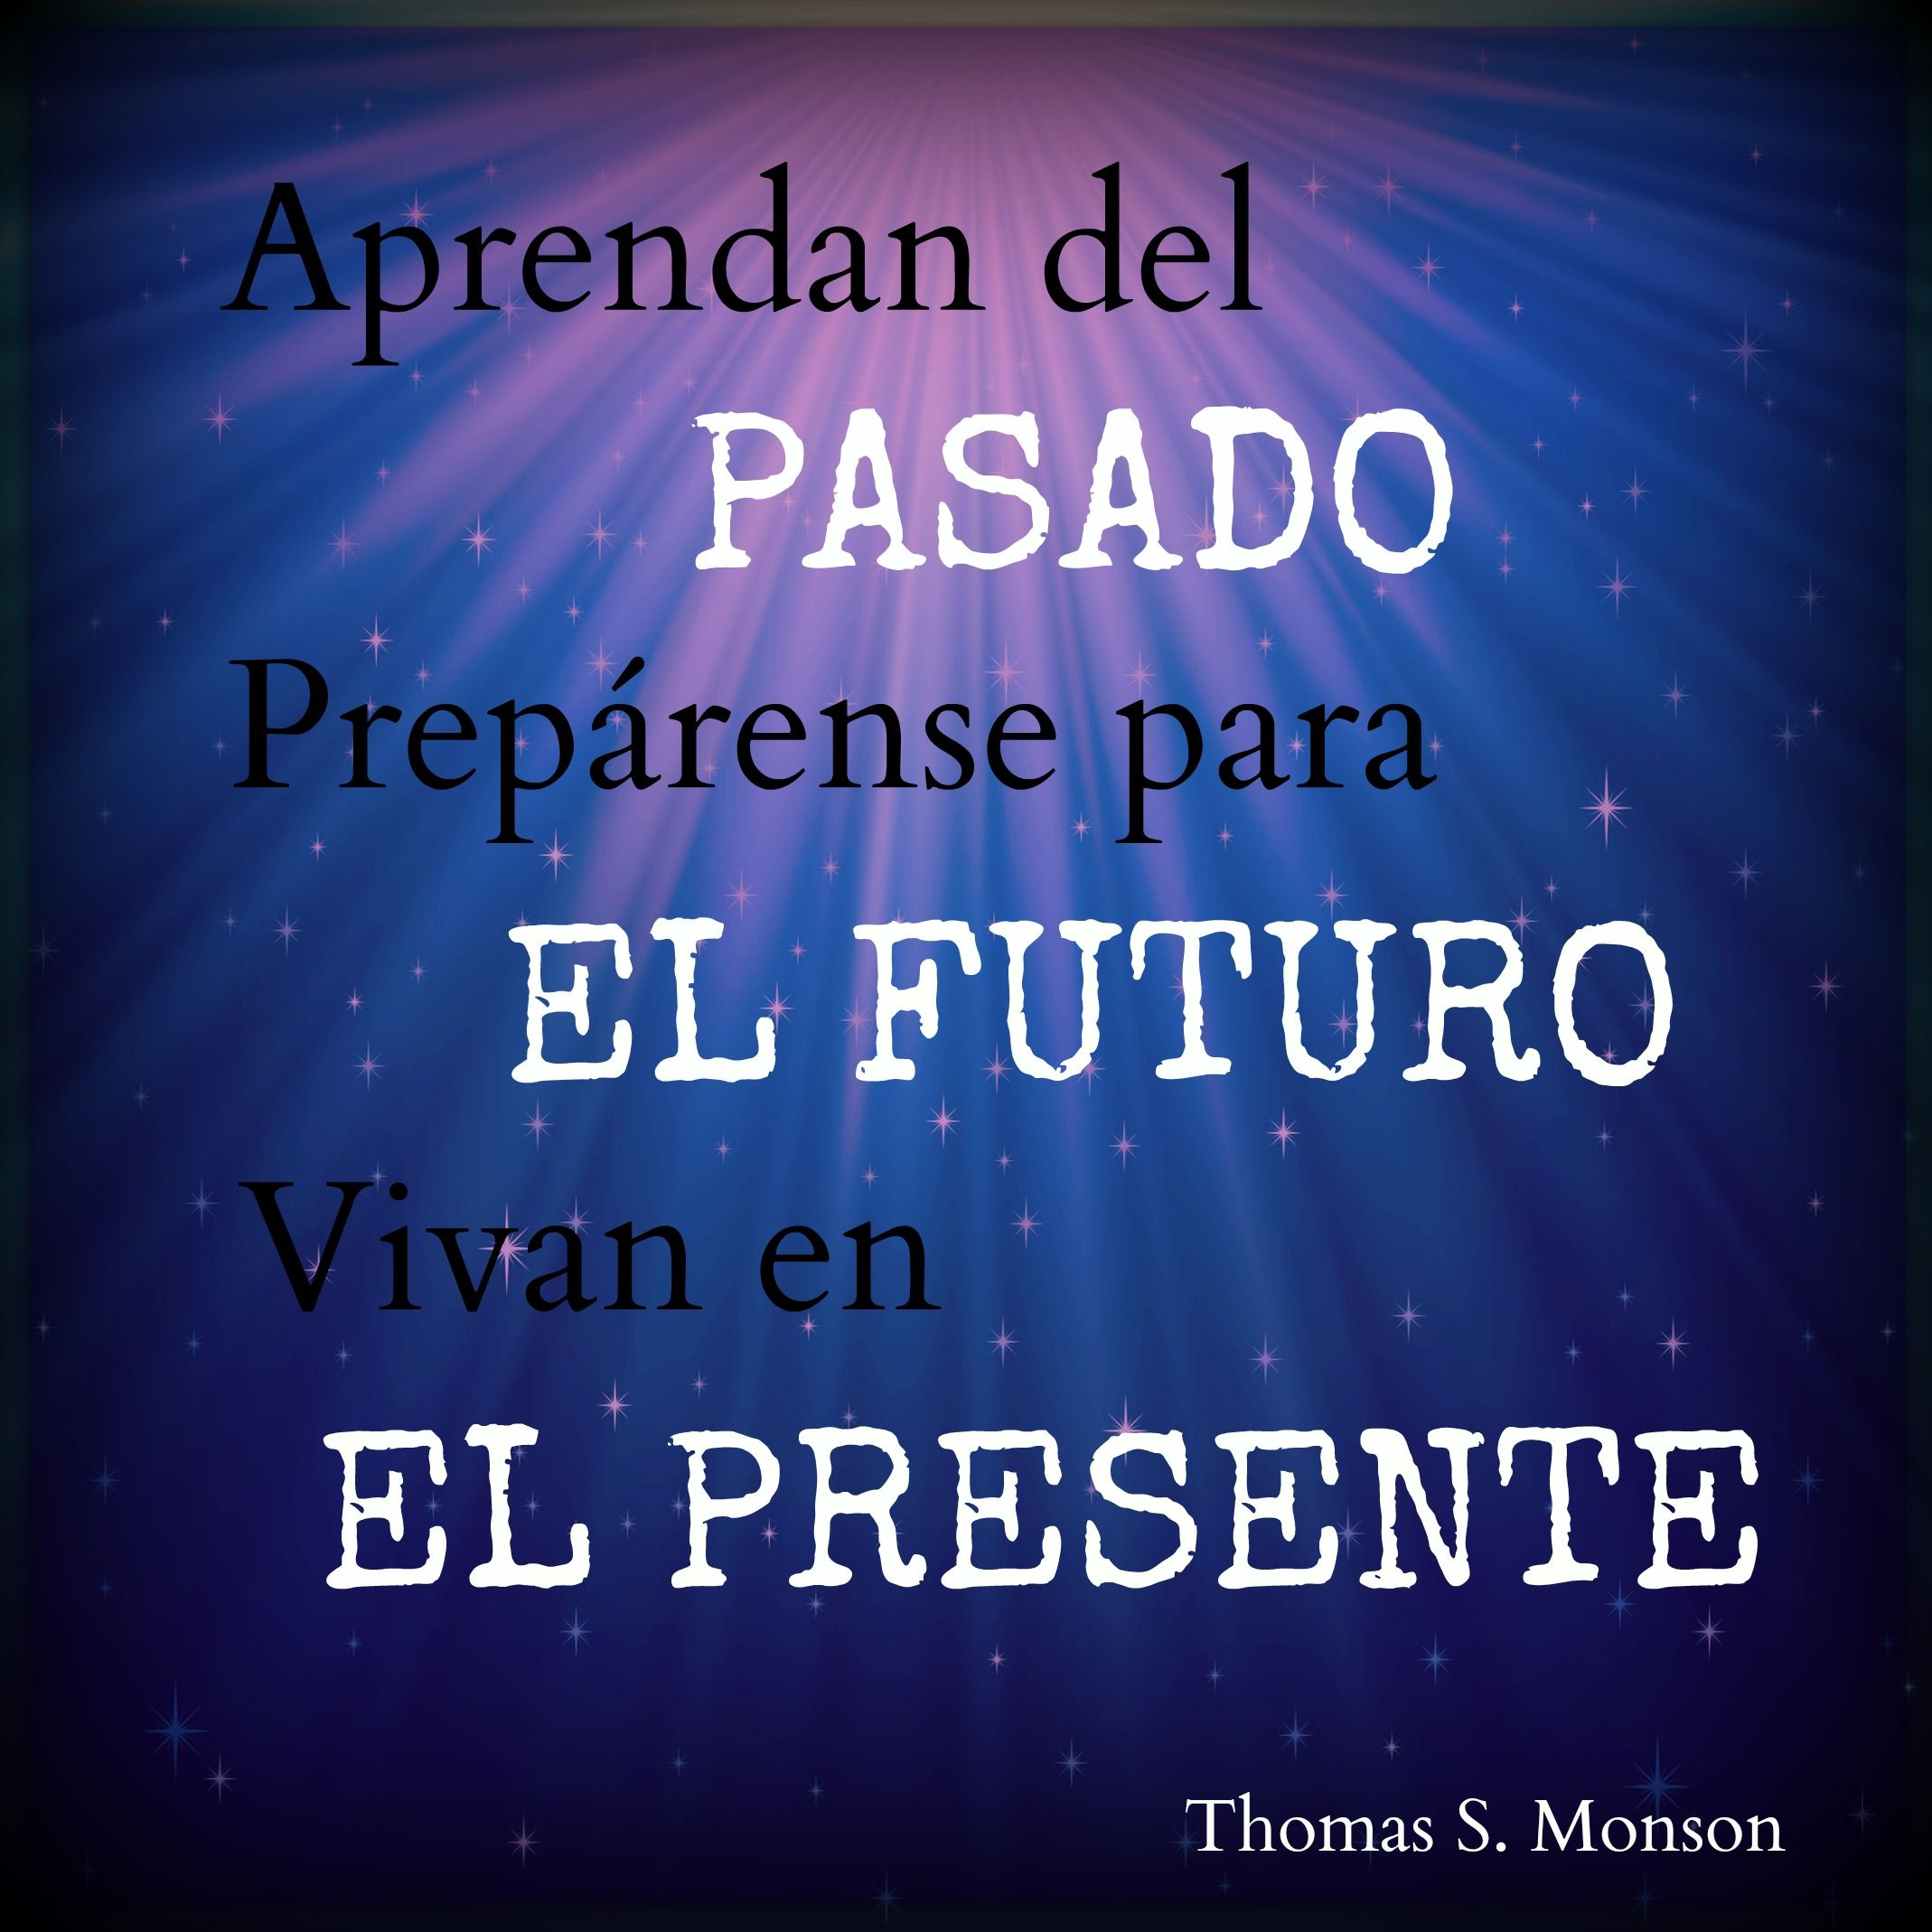 Quotes In Spanish Endearing Lds Quotes In Spanish Past Present Future Pasado El Futuro El